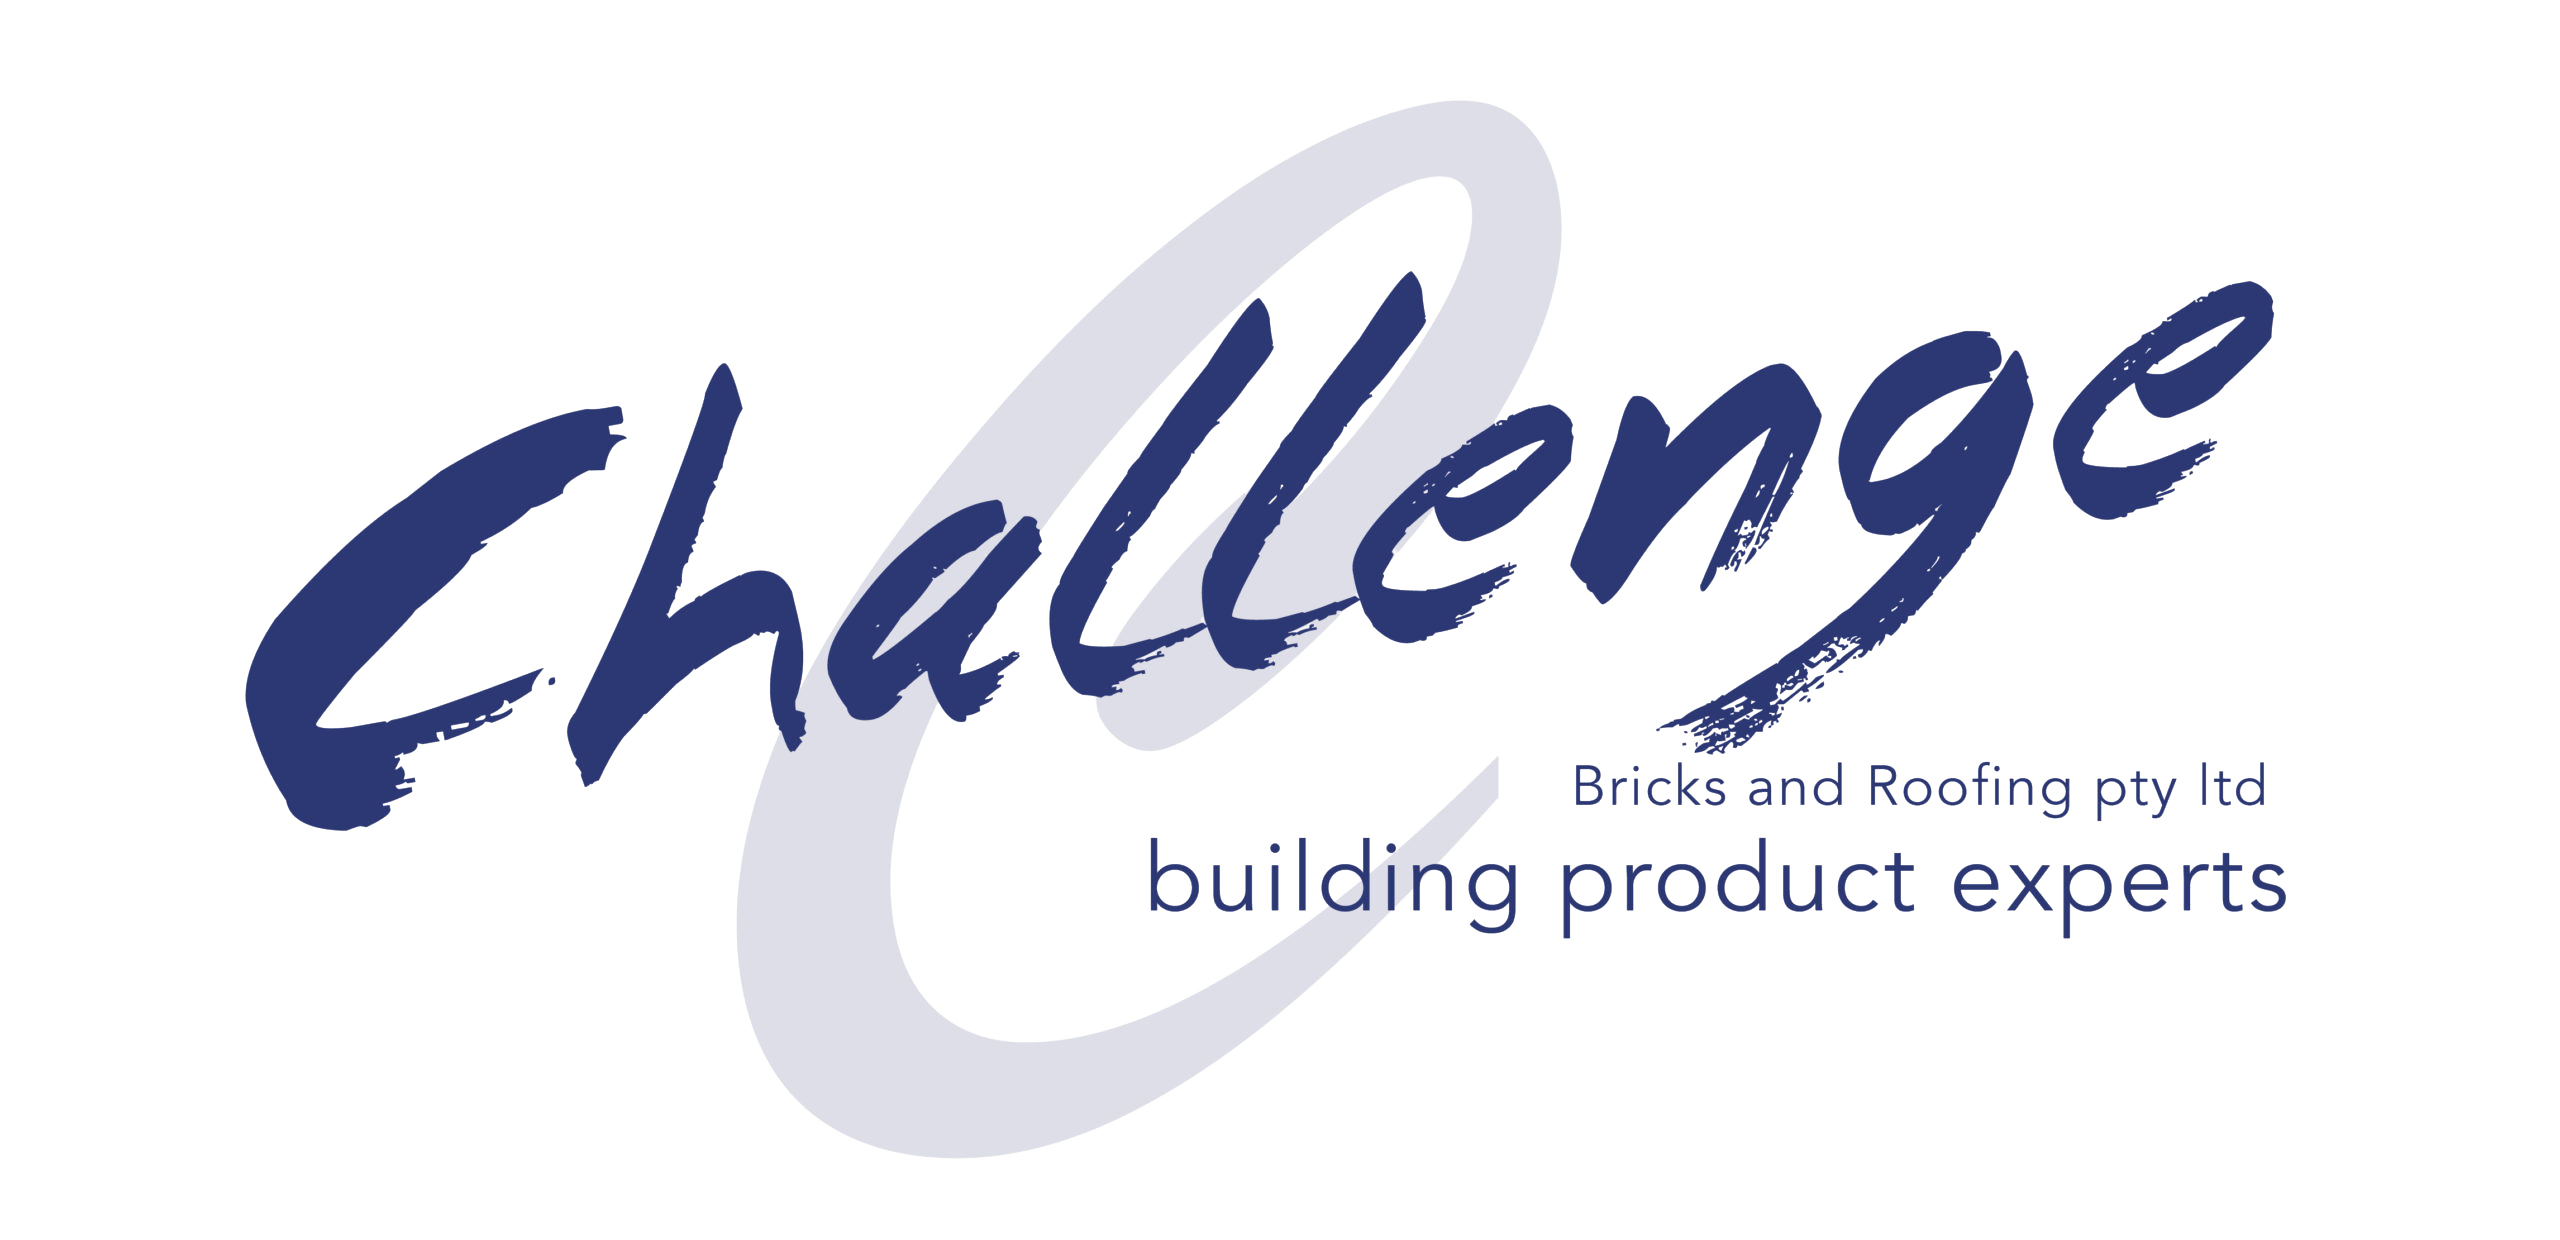 Challenge Bricks and Roofing